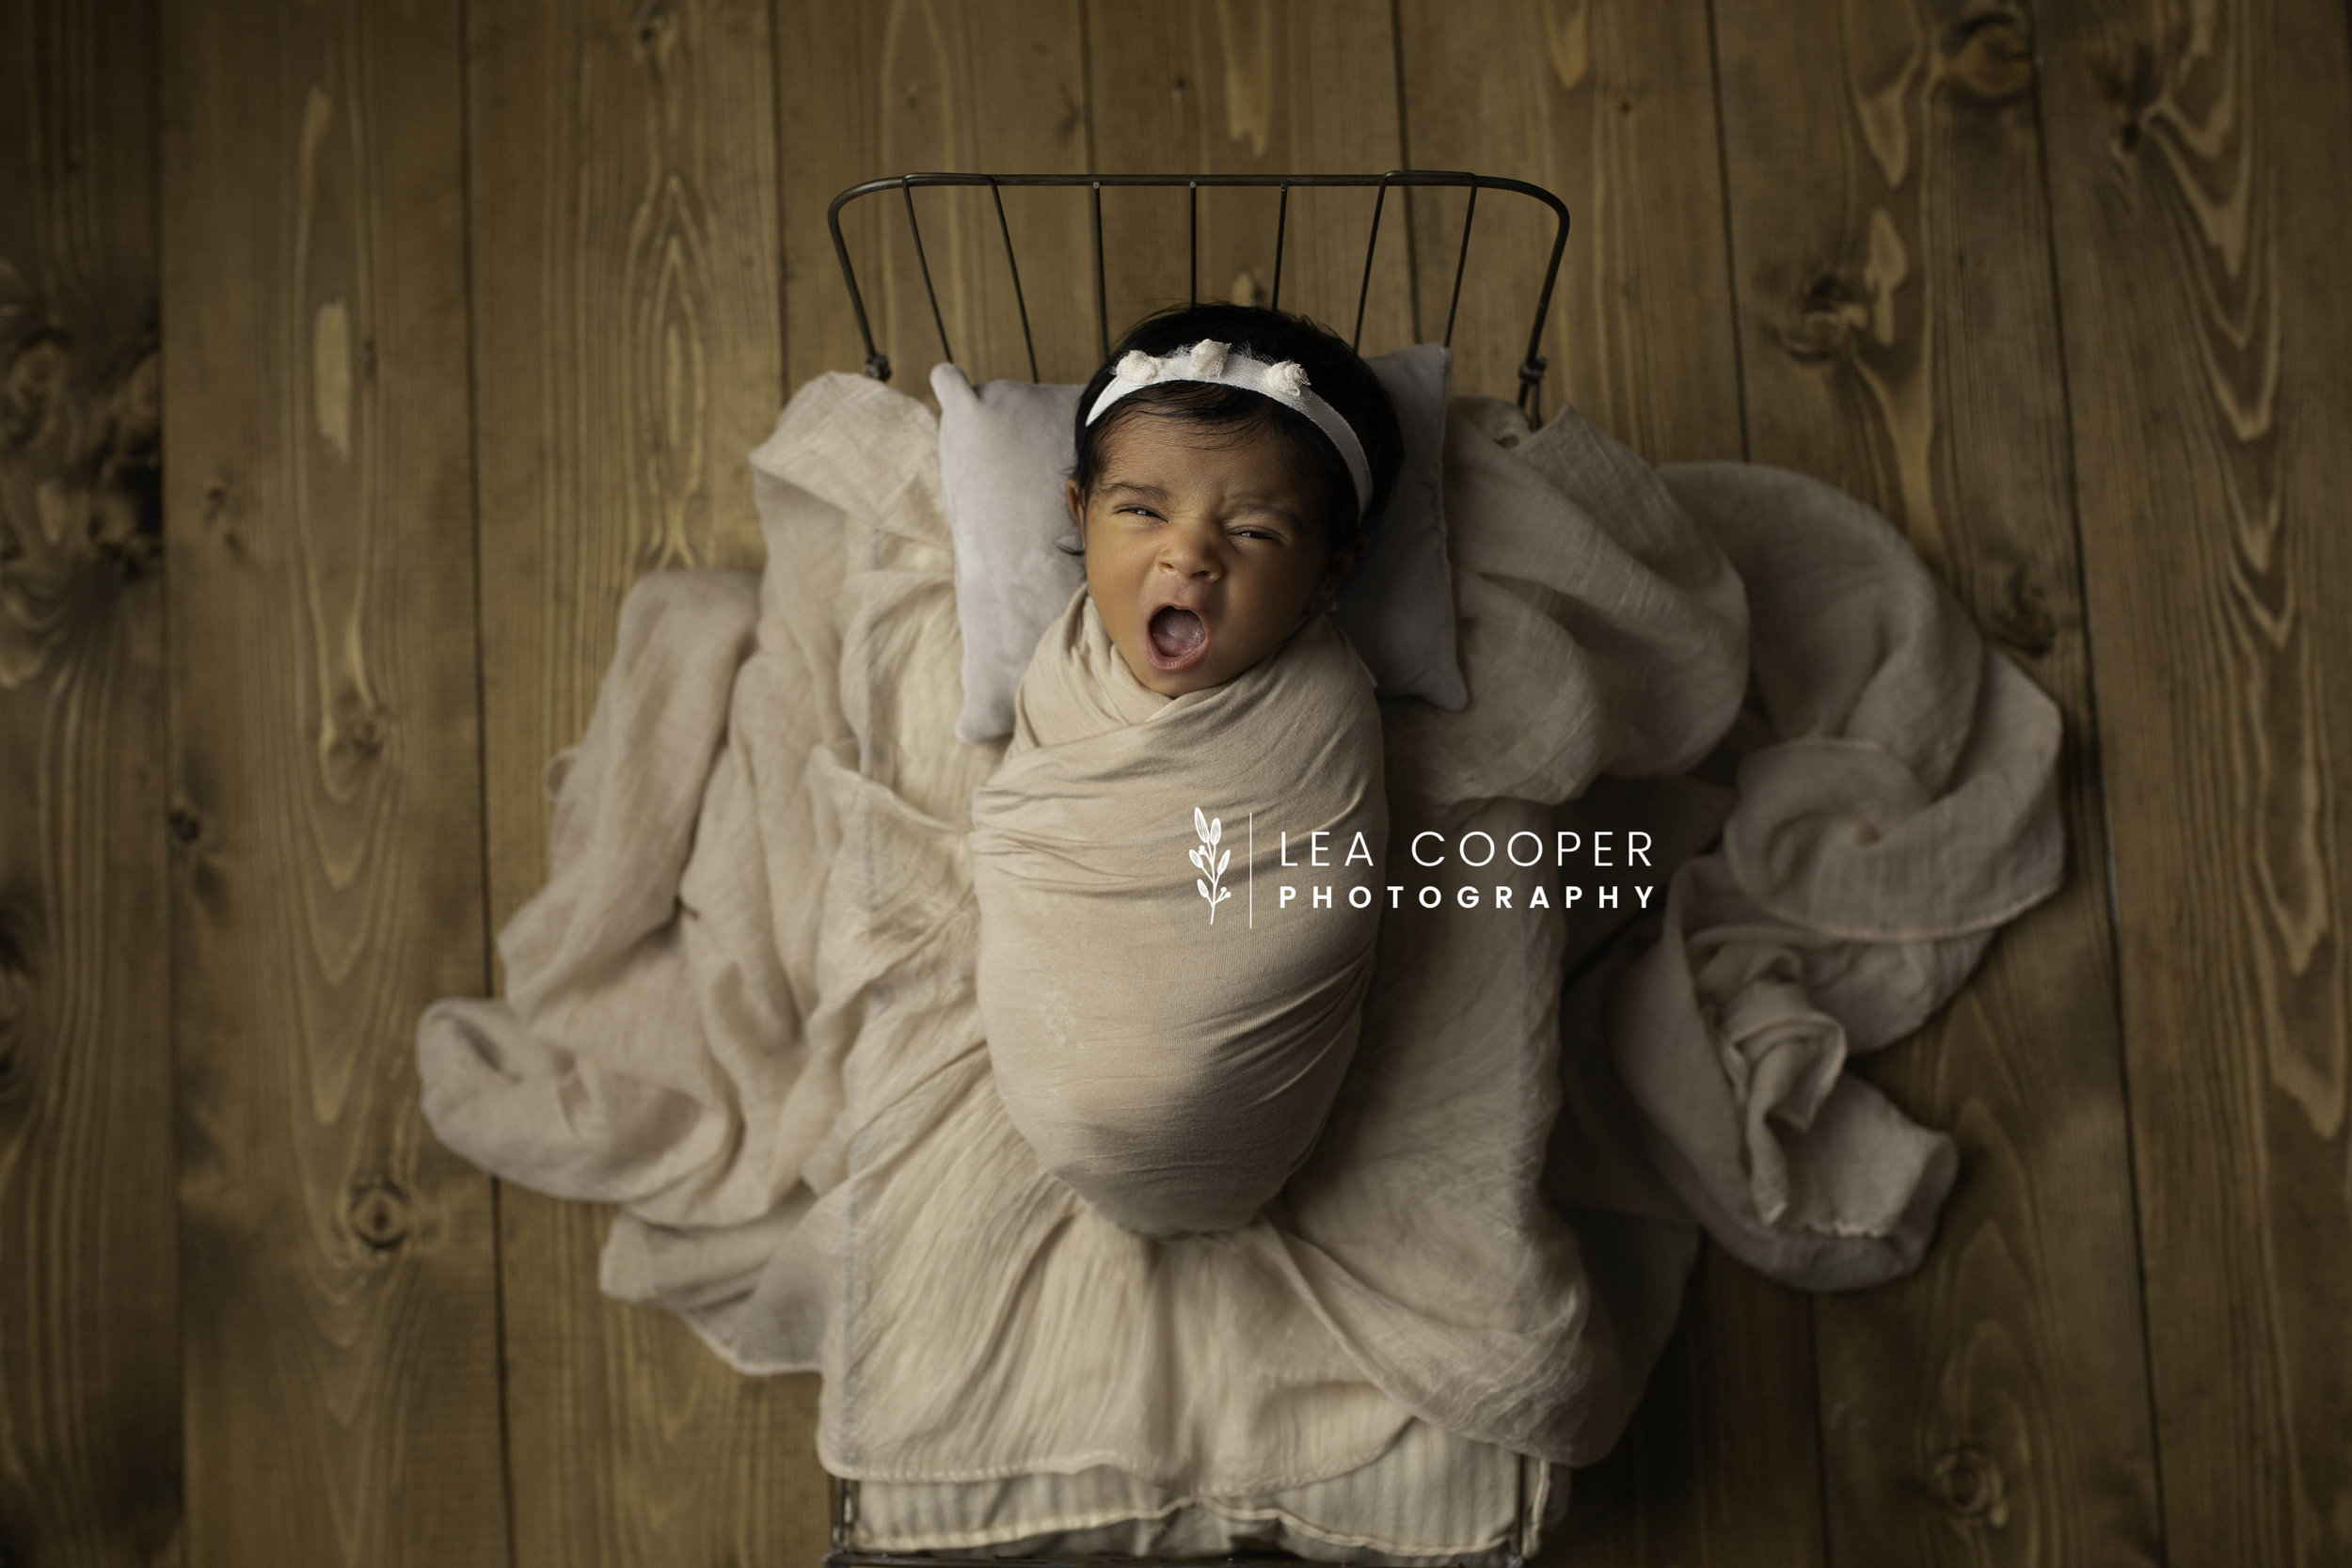 LEA-COOPER-PHOTOGRAPHY-NEWBORN-PHOTOGRAPHER-BABY-PHOTOGRAPHY-NEWBORN-SESSION-WILLENHALL-WOLVERHAMPTON-WEST-MIDLANDS-UK-11.jpg